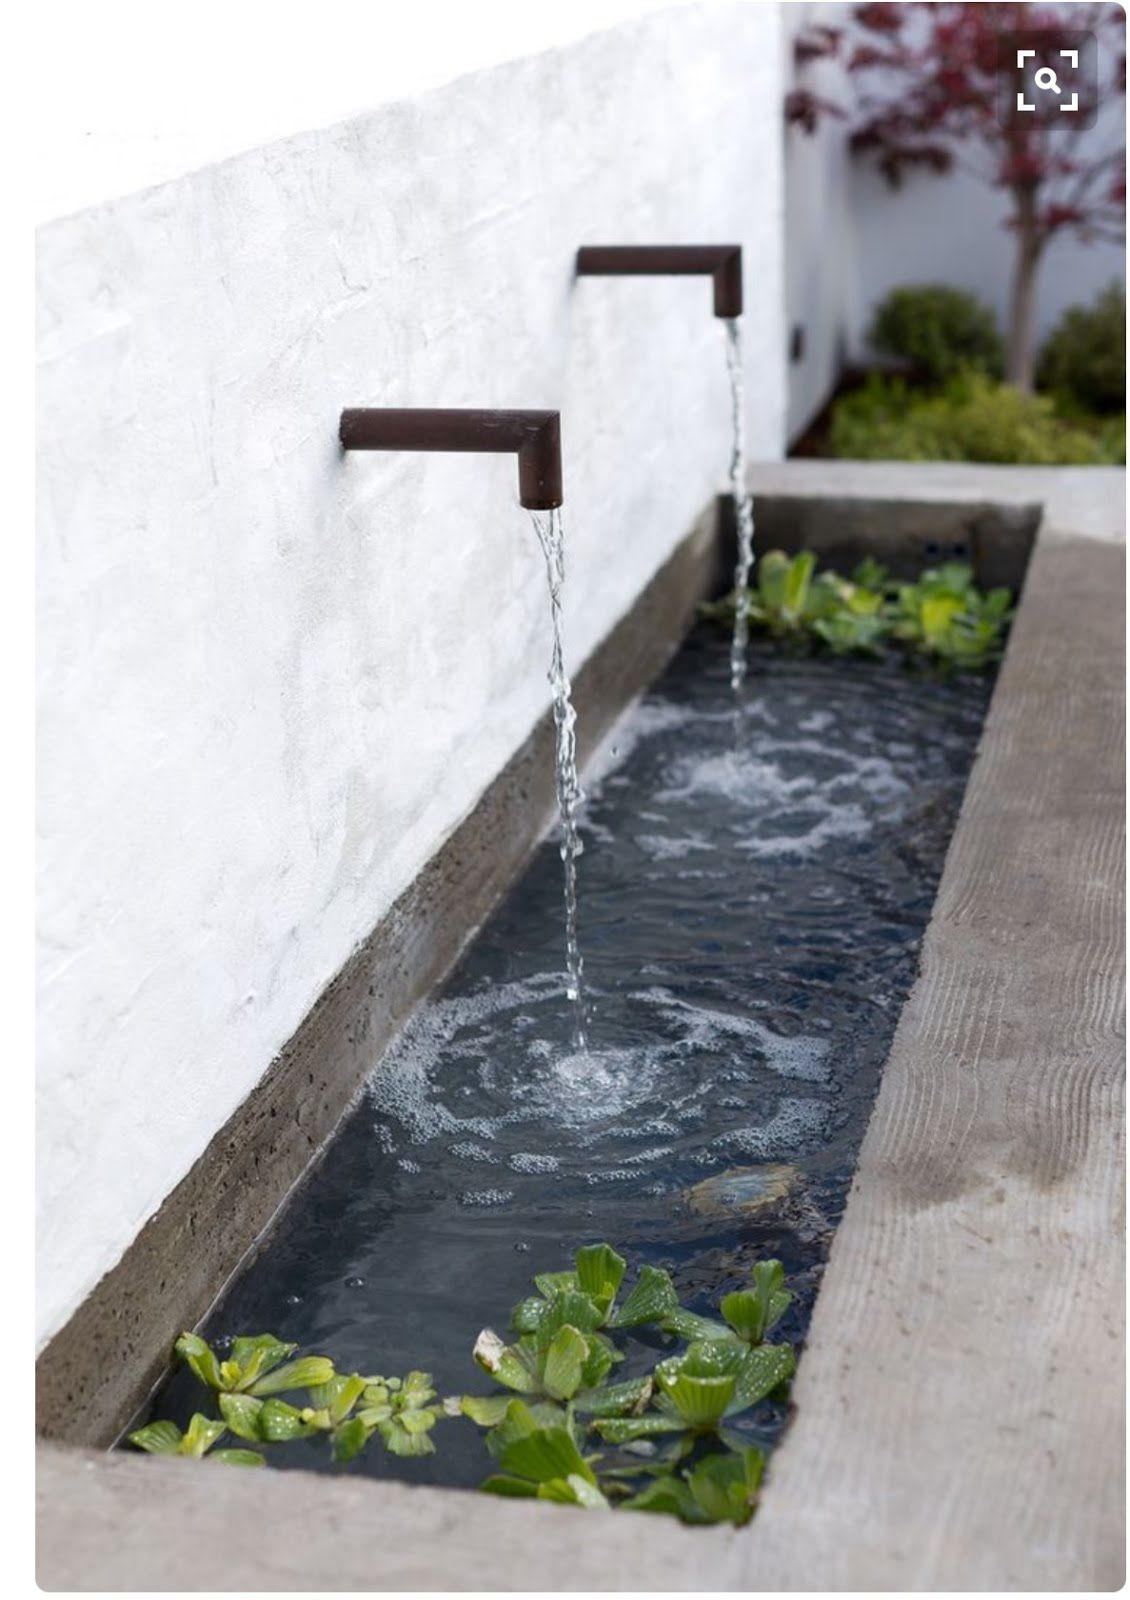 La Maison Jolie 10 Gardening Tips For The Modern Home Ponds Backyard Landscaping Water Feature Outdoor Water Feature Modern backyard water feature ideas